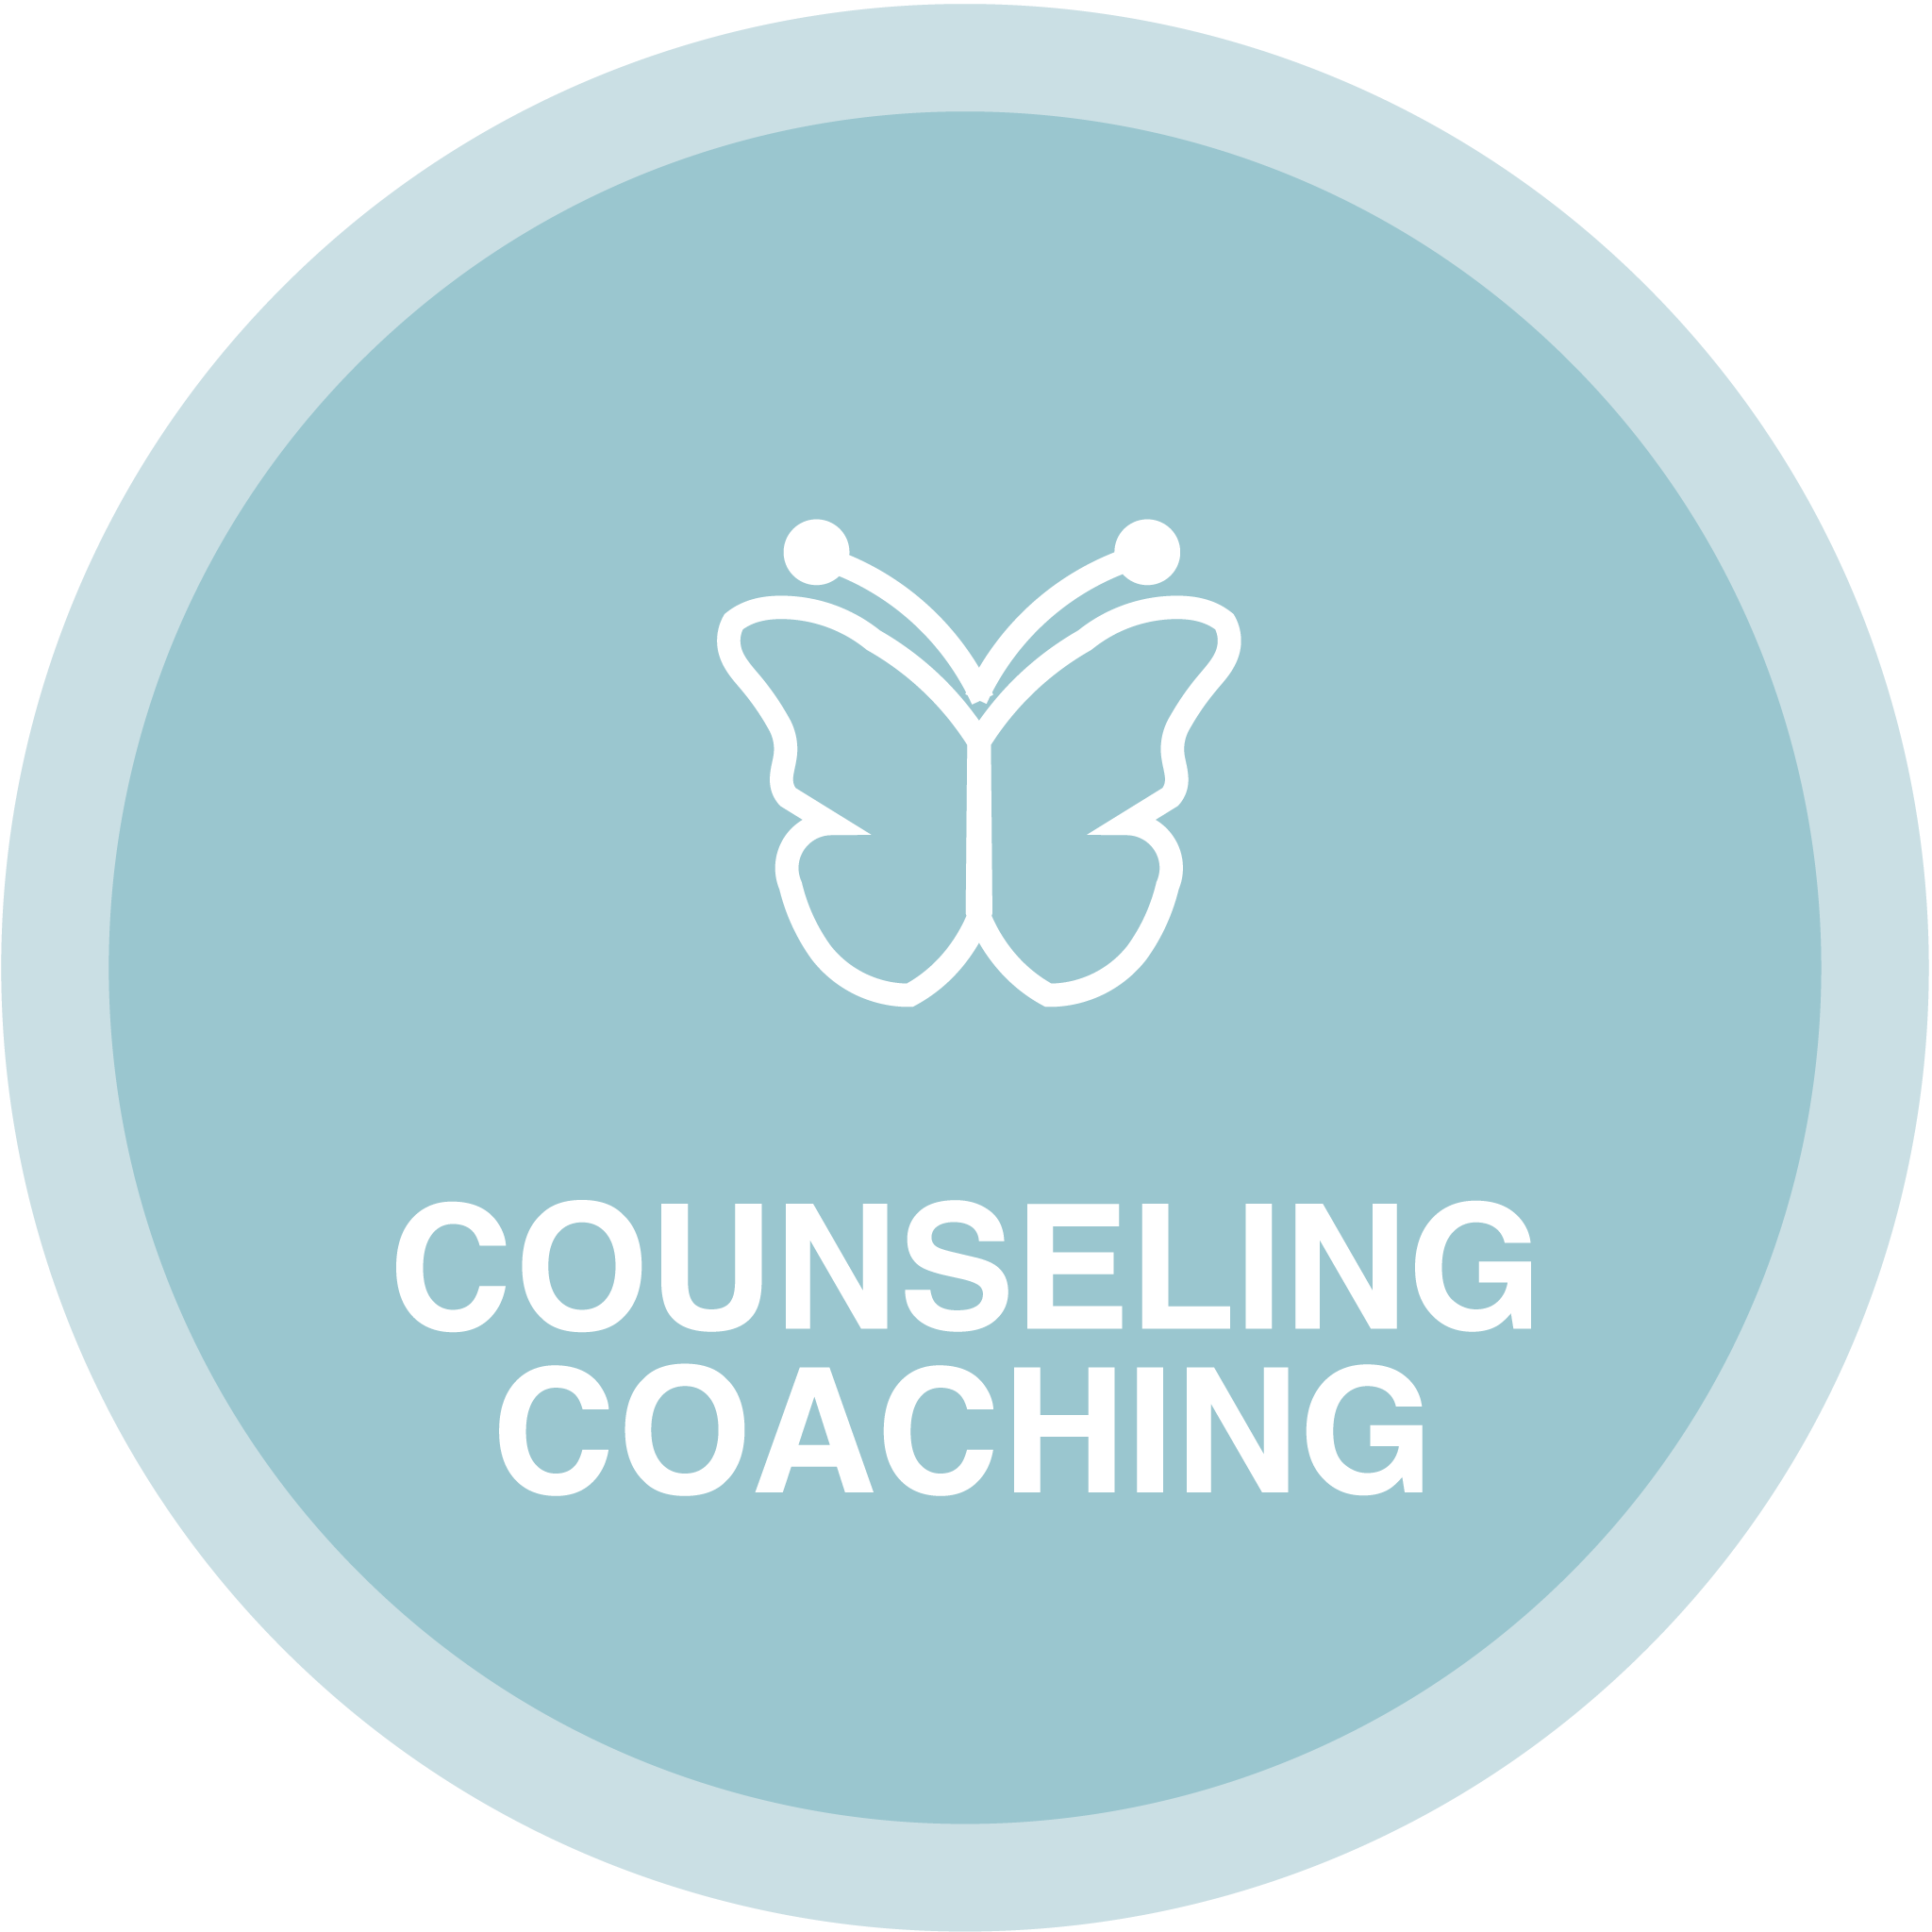 Counseling Coaching